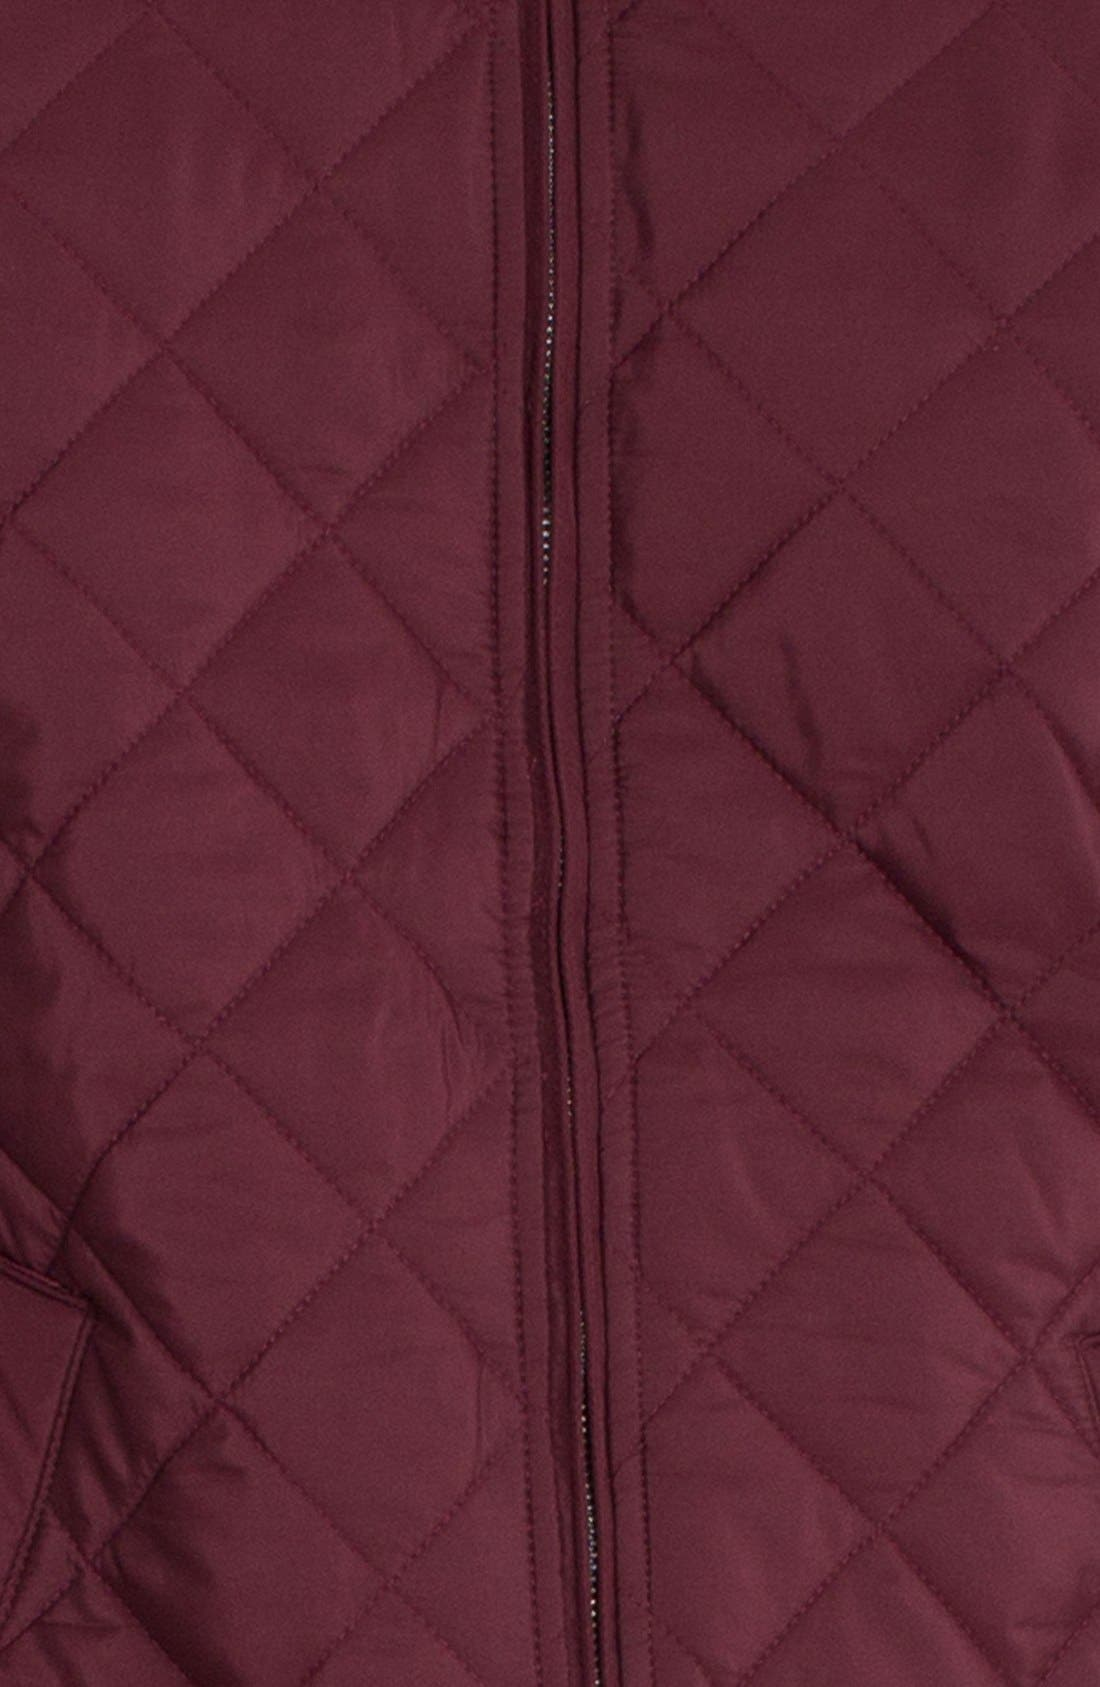 'Gatti' Quilted Panel Lambswool Knit Jacket,                             Alternate thumbnail 4, color,                             Maroon